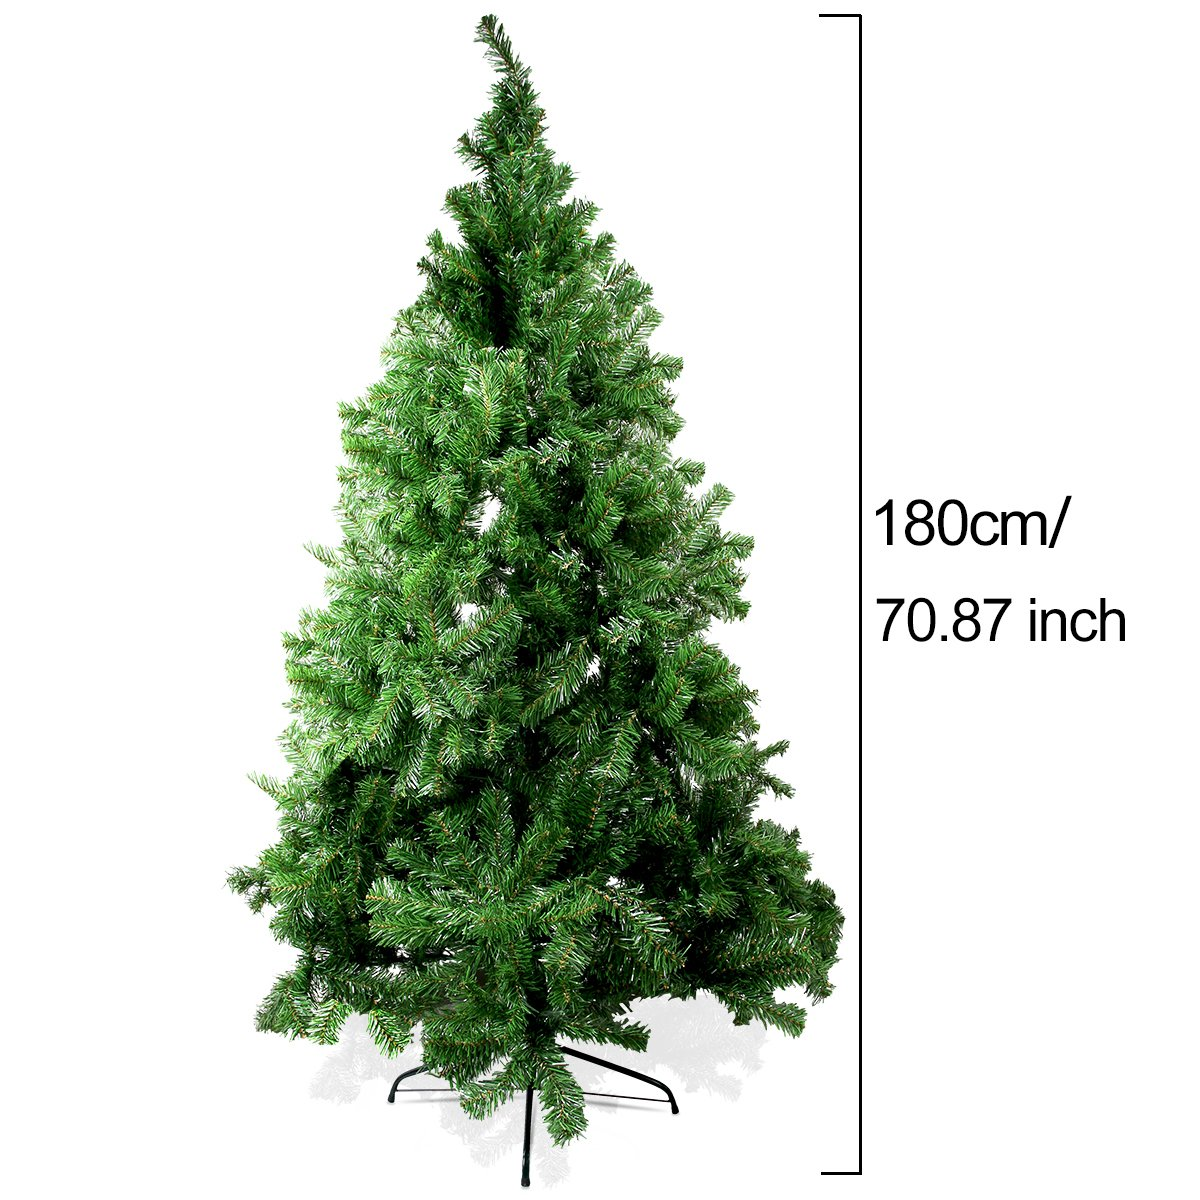 Aszune Christmas Pine Tree 6ft Artificial Xmas Tree with 750 Branches and Solid Metal Legs